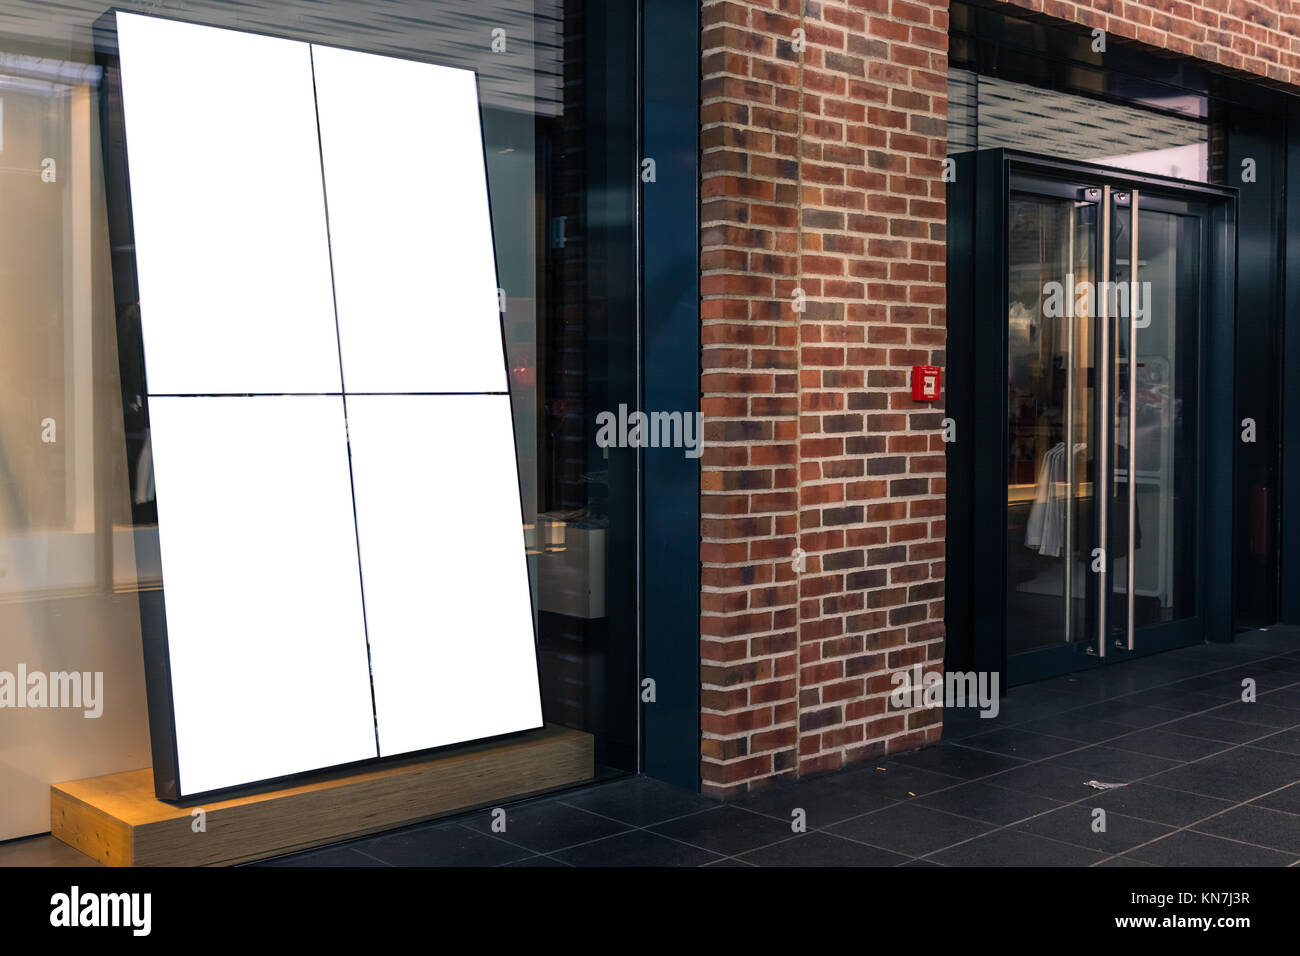 Shop Store Front Window Display Upscale Mall Mockup White Isolated Advertisement Blank - Stock Image